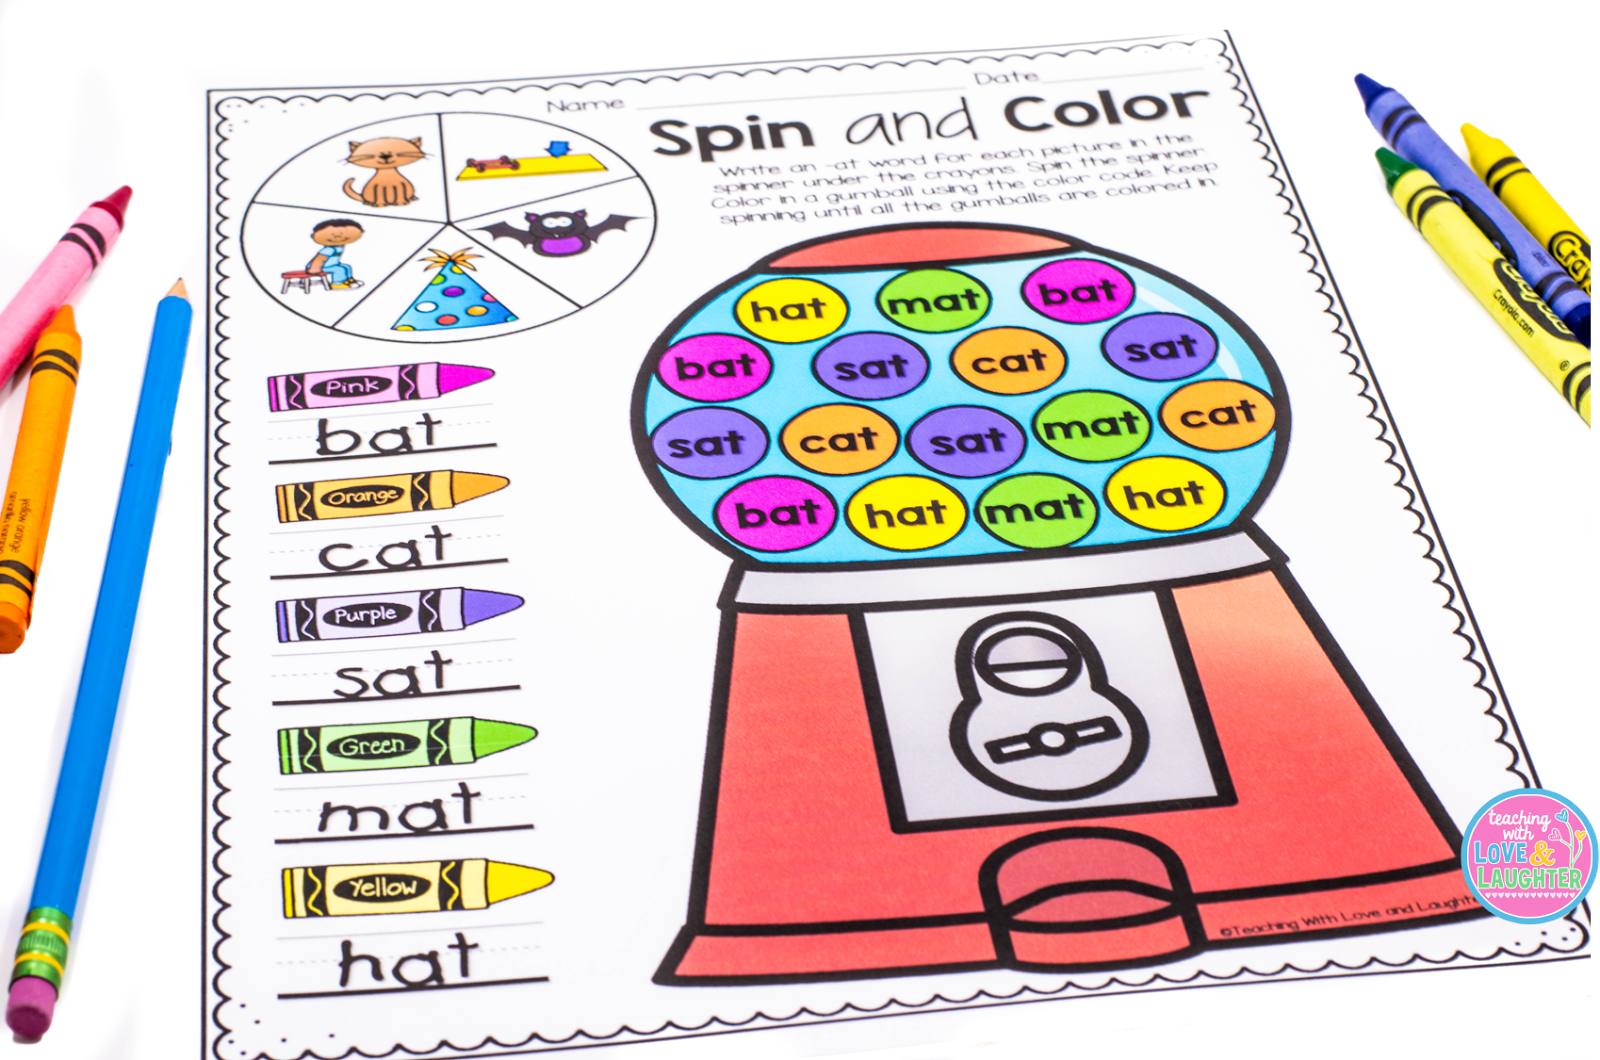 on the lines students write the words for the pictures in the spinner then they use the color code to color in the words that are already written in each - The Color Code Book